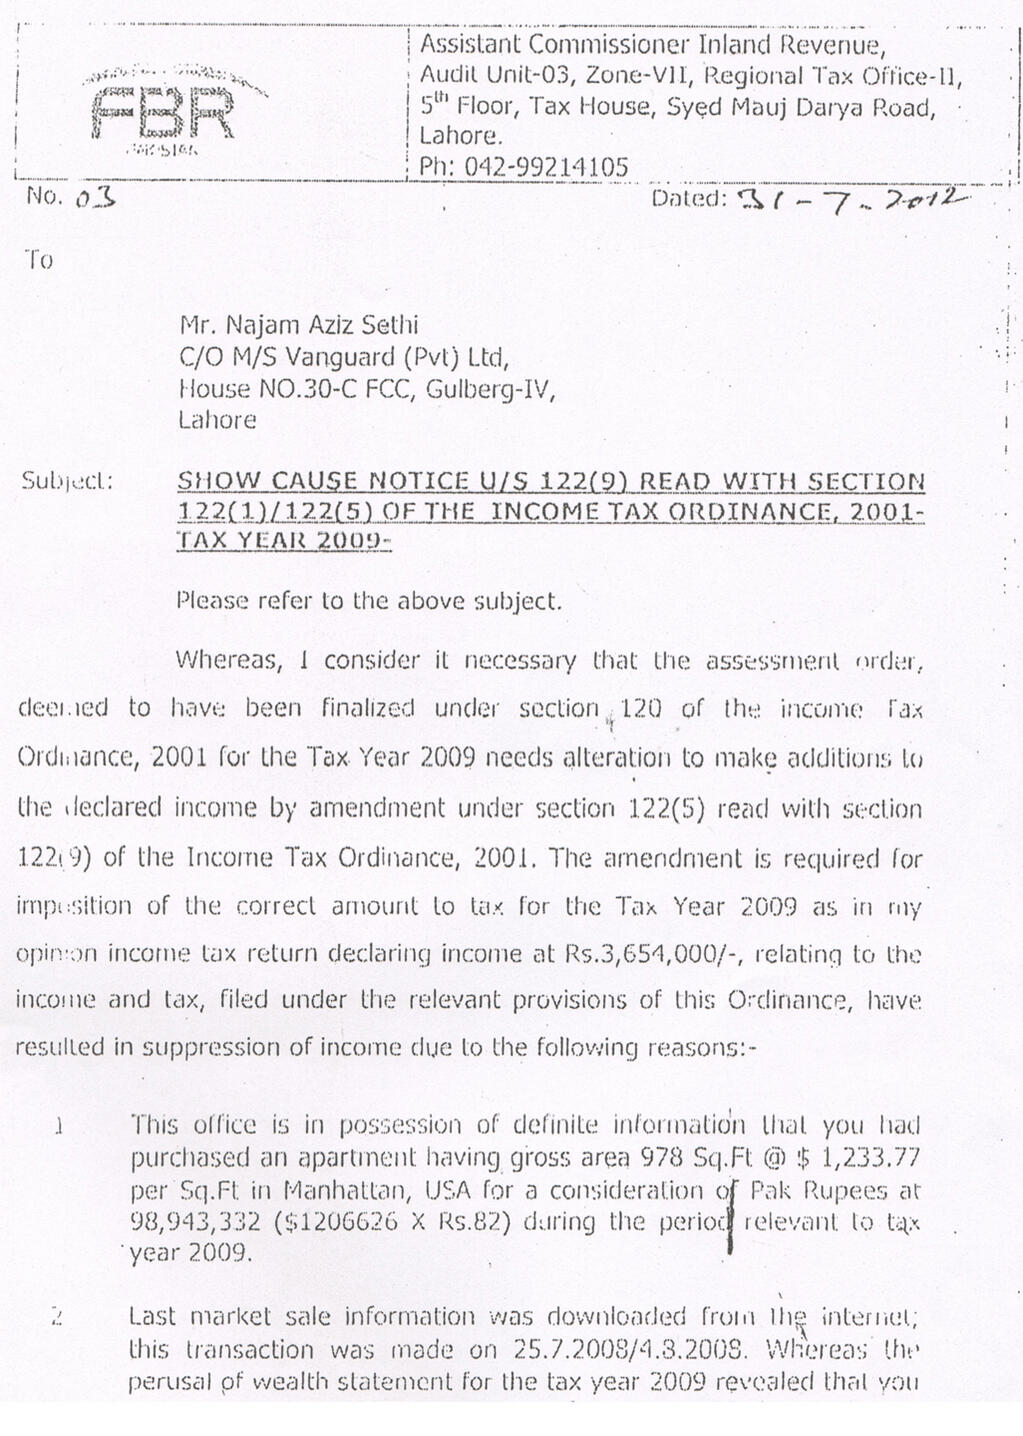 Rs 20 million tax notice by FBR to Caretaker Chief Minister Punjab